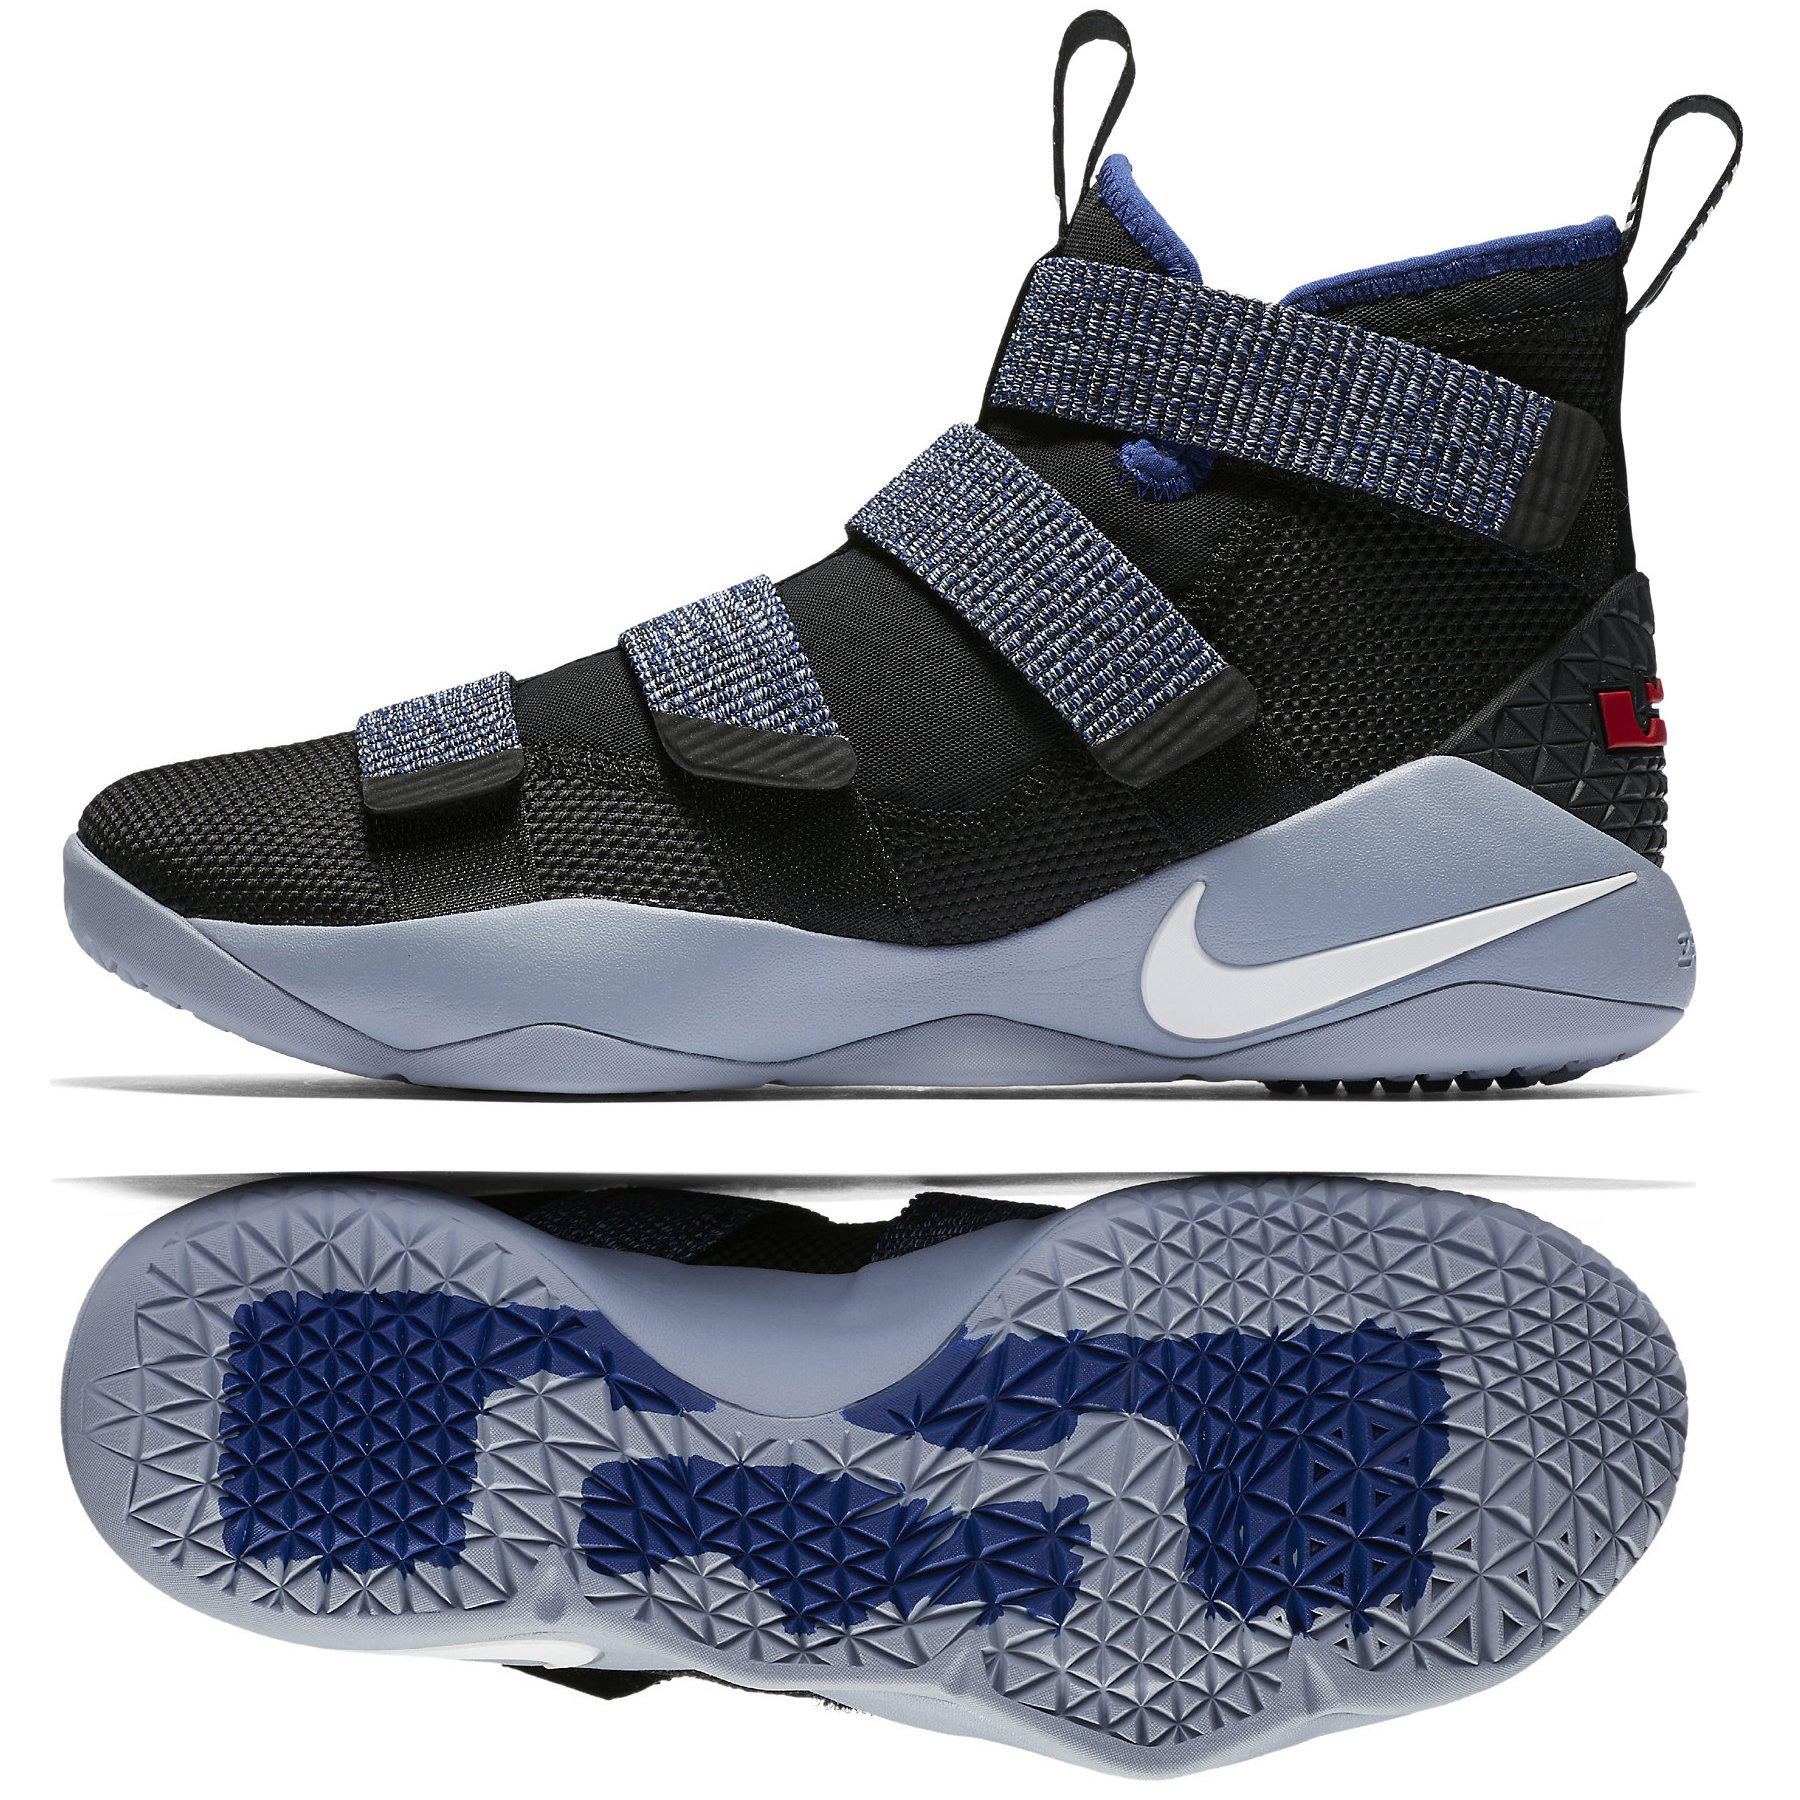 new concept dec20 dcaa2 Galleon - NIKE Lebron Soldier Xi 897644 005 Black White Deep Royal Blue Men s  Basketball Shoes (9)